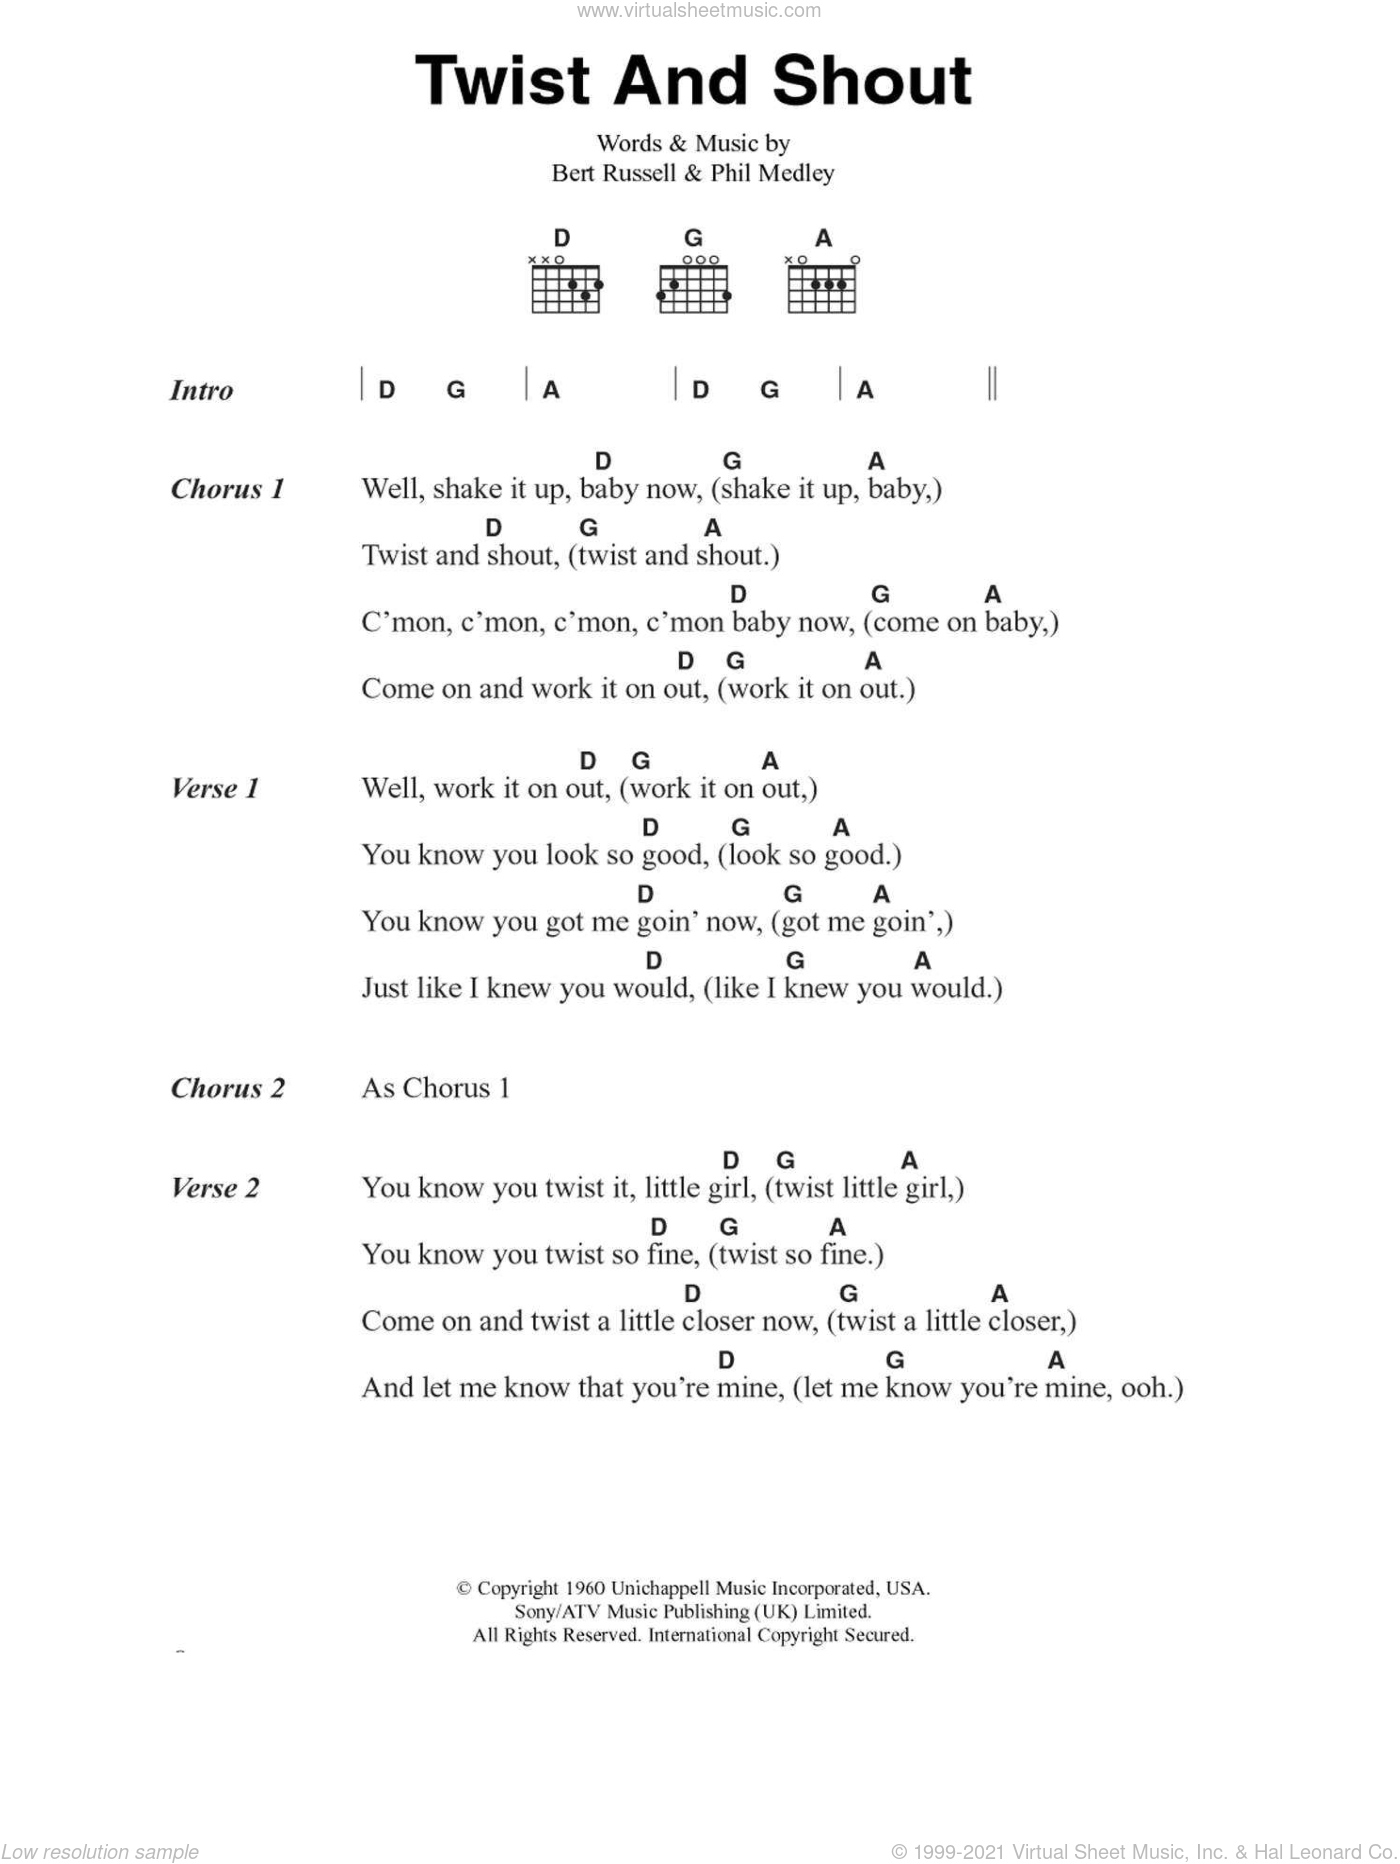 Twist And Shout sheet music for guitar (chords) by The Beatles, Bert Russell and Phil Medley, intermediate. Score Image Preview.